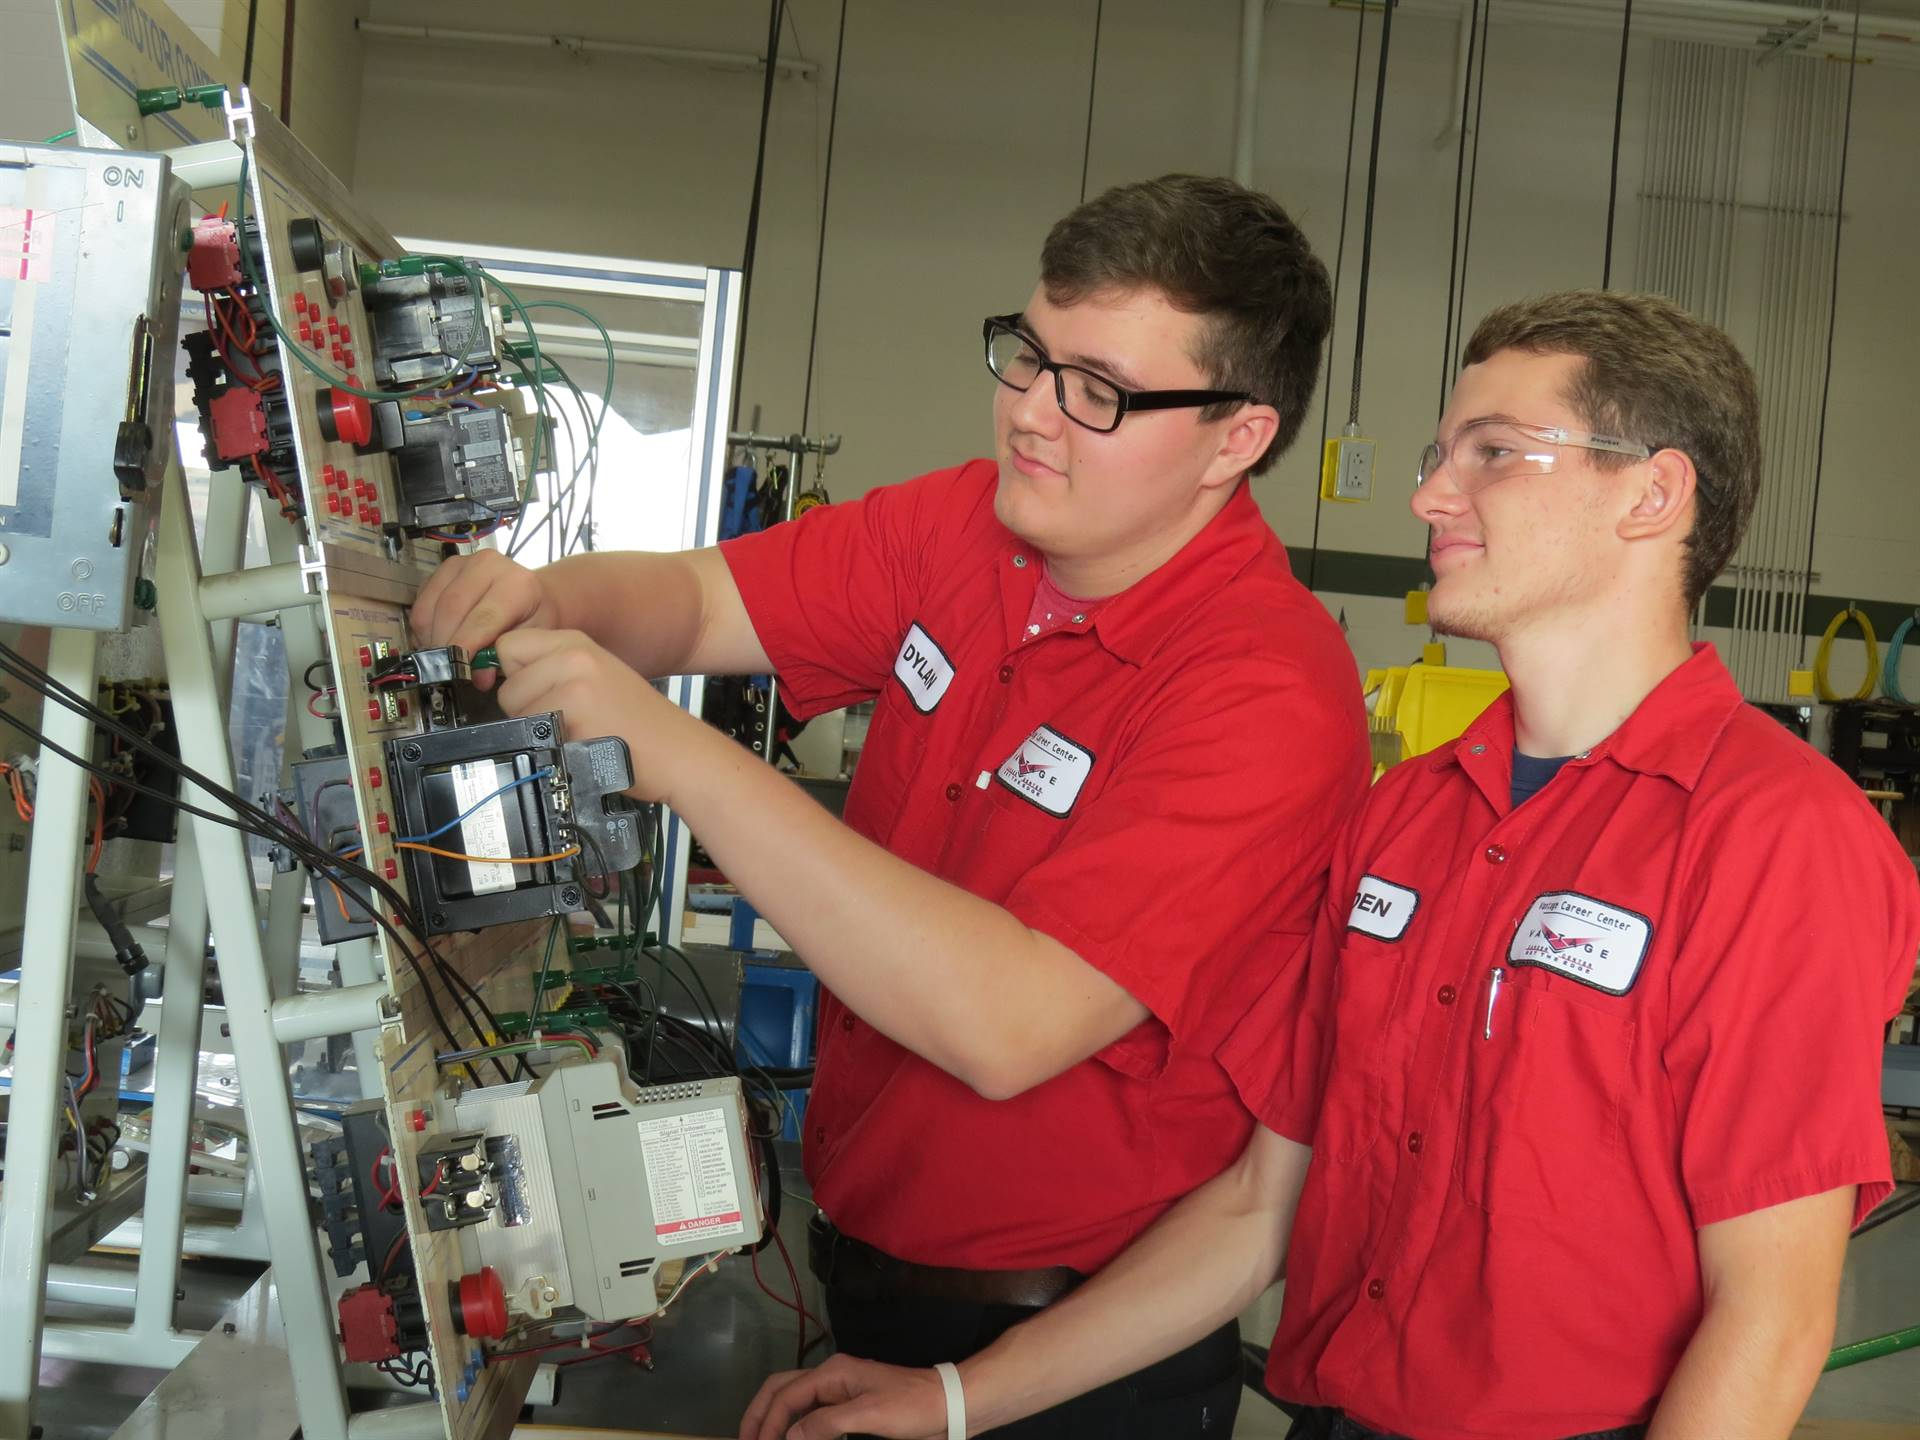 Two male Electricity students working on a large electronic board